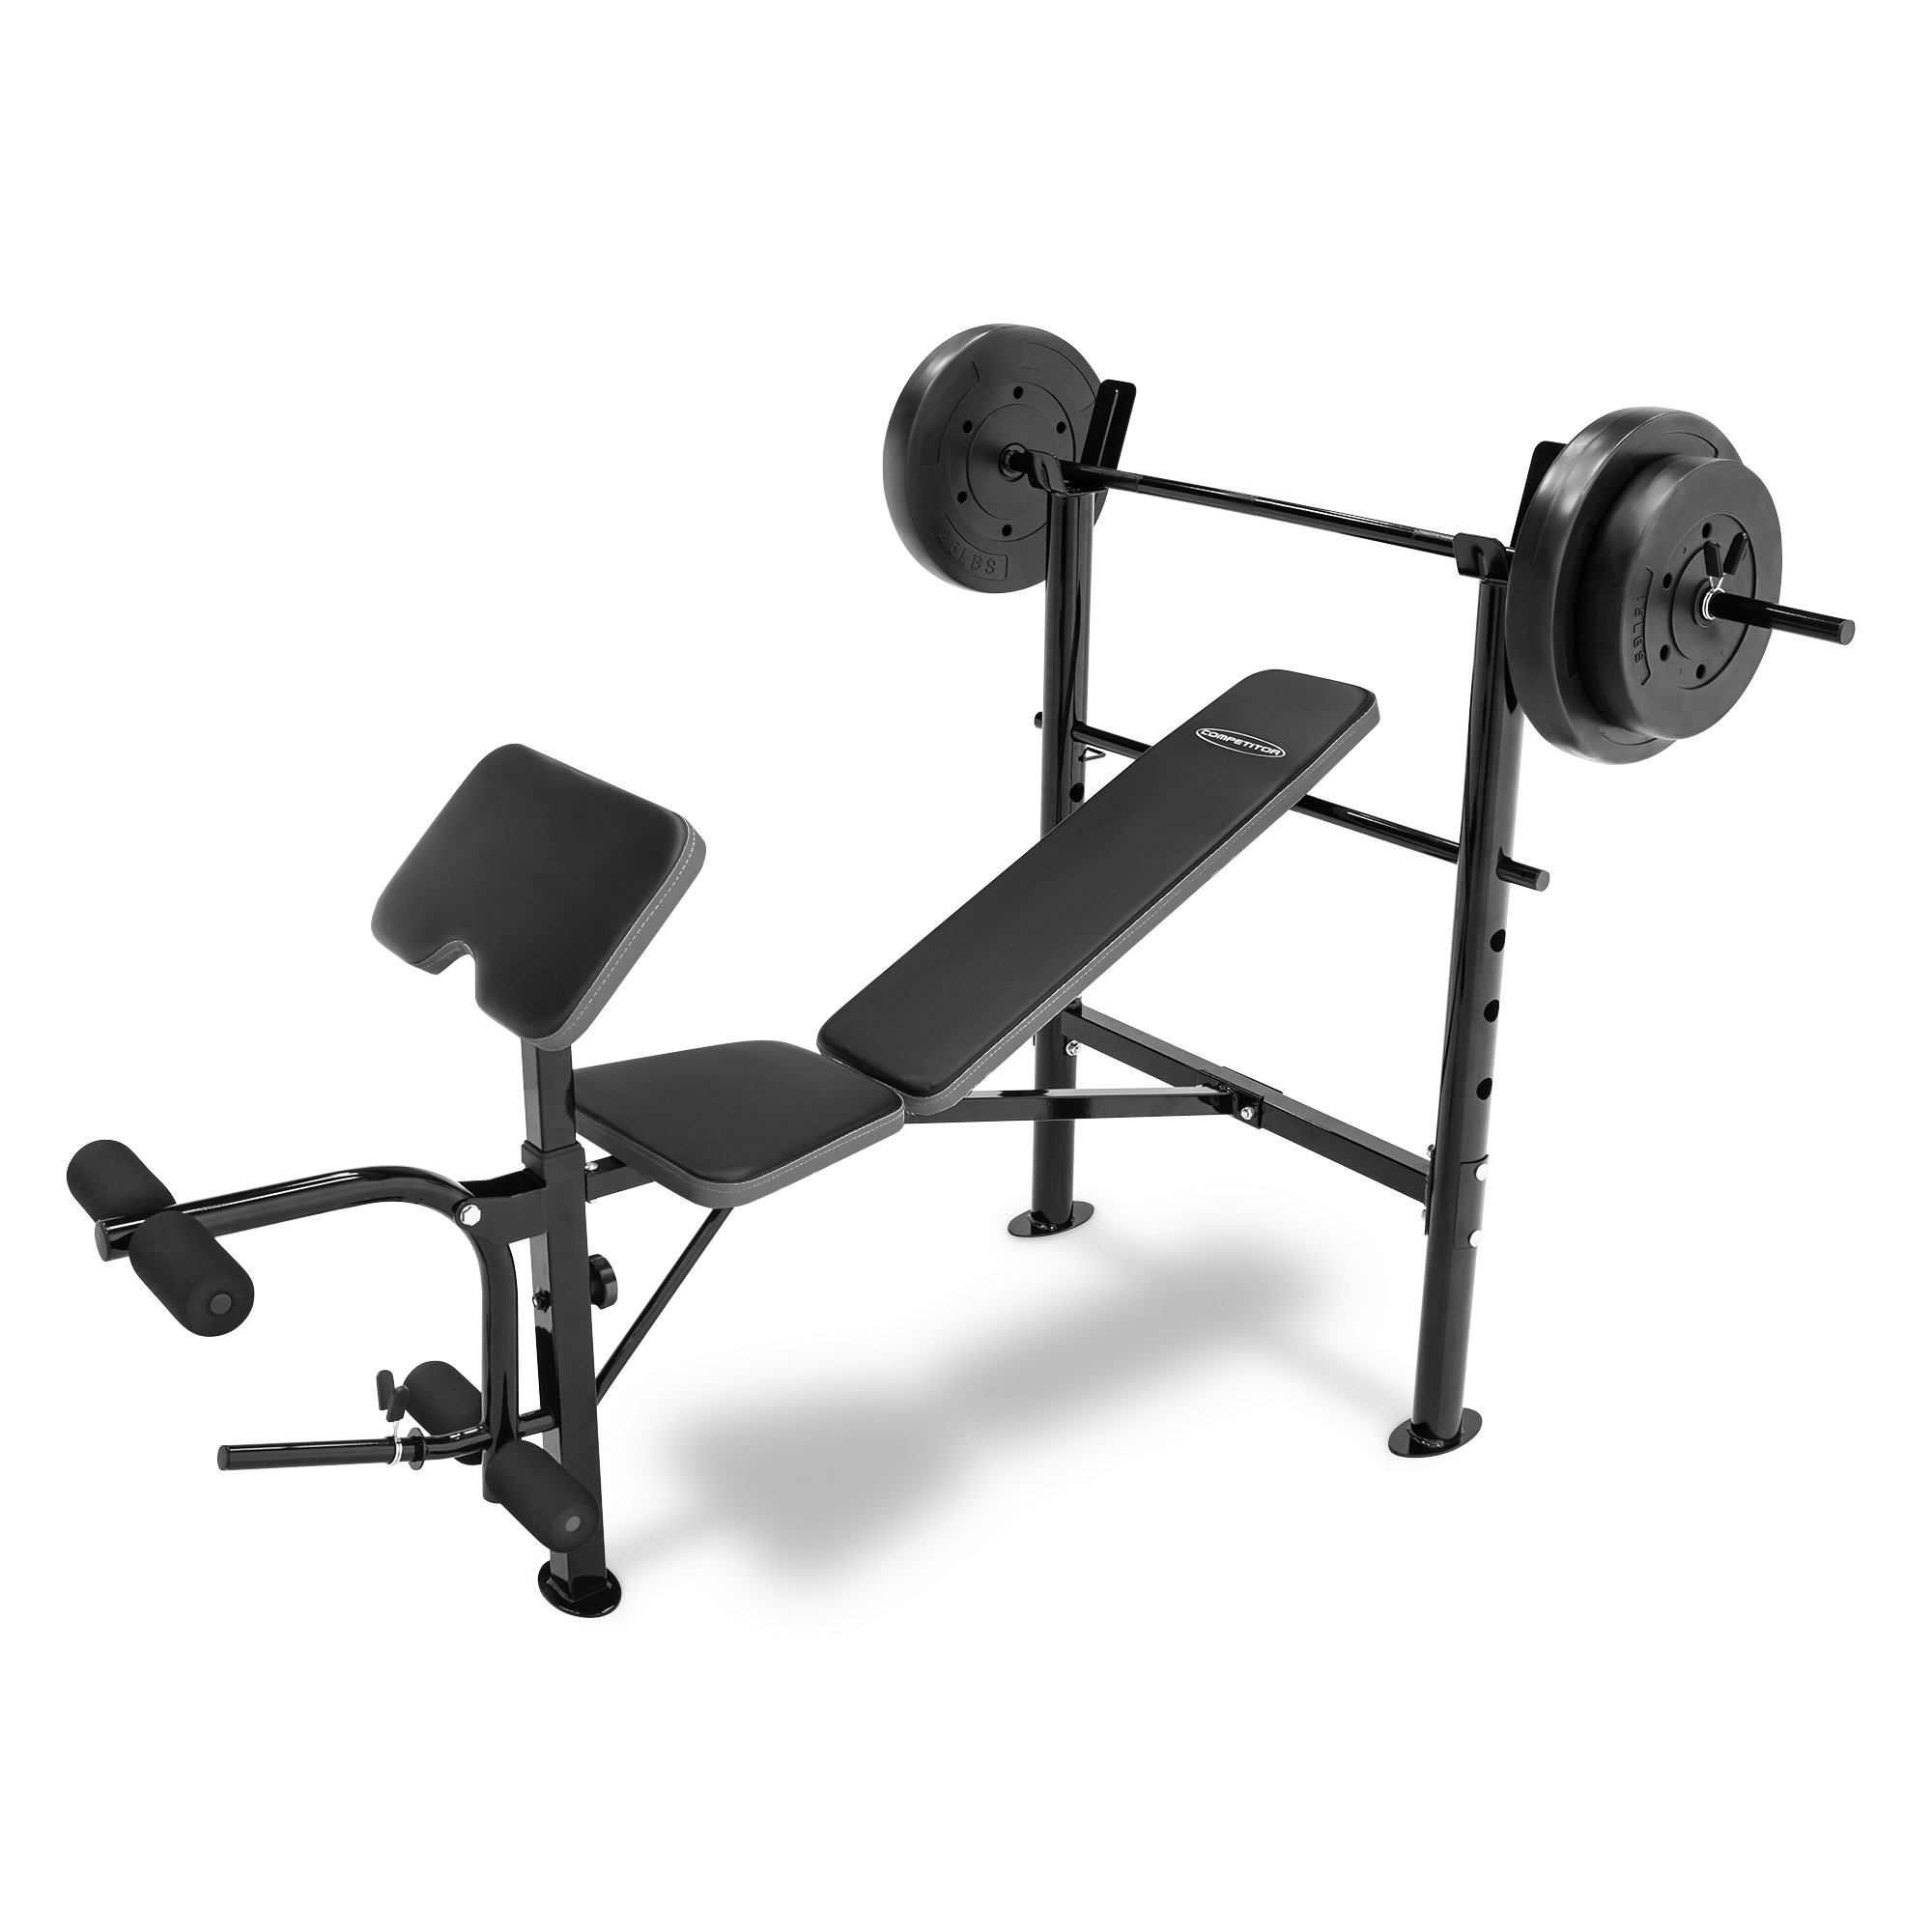 COMPETITOR Marcy Workout Bench with 80 lbs Weight Set Combo (Black) - CB-20110 by COMPETITOR